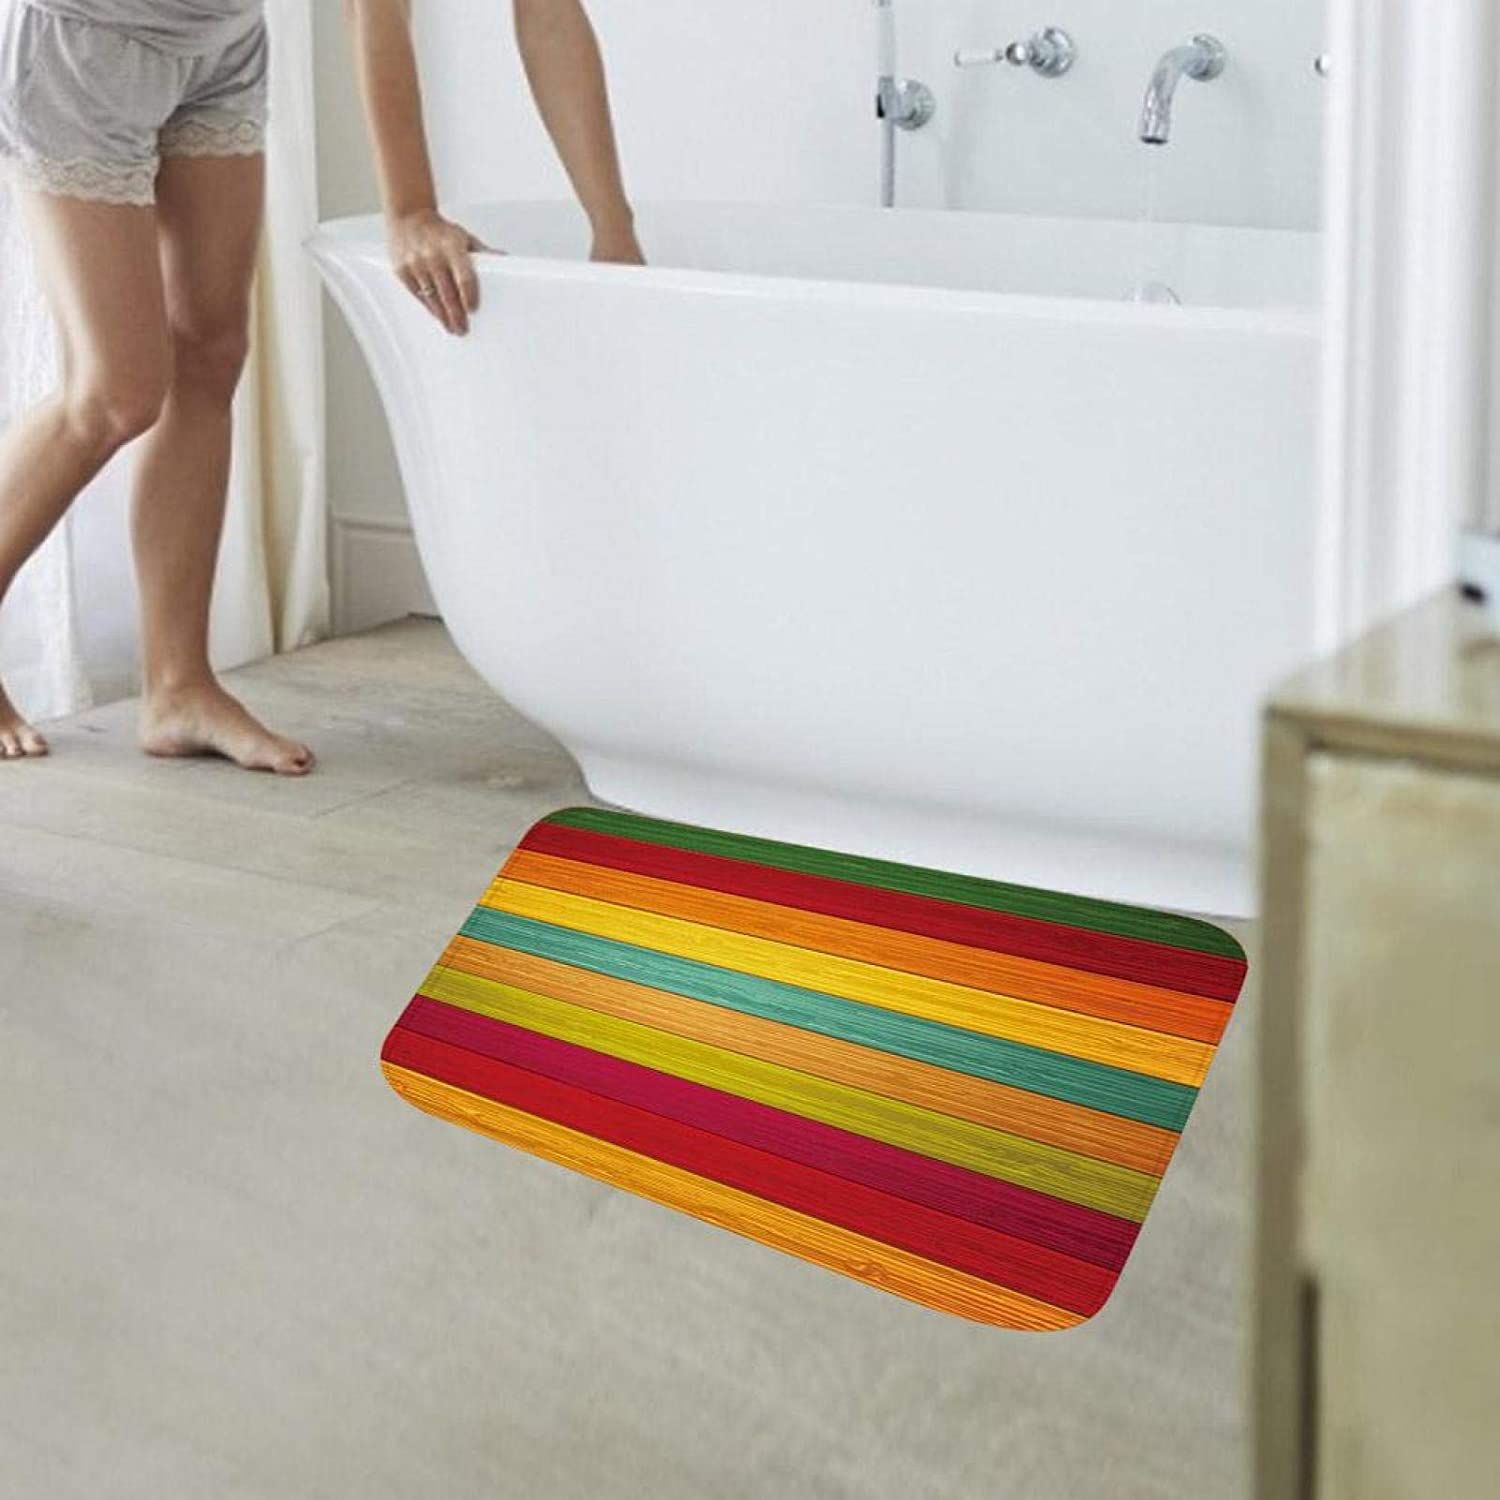 Max 89% OFF Floor Mats Kitchen Safety and trust Wearable Office for Entrance